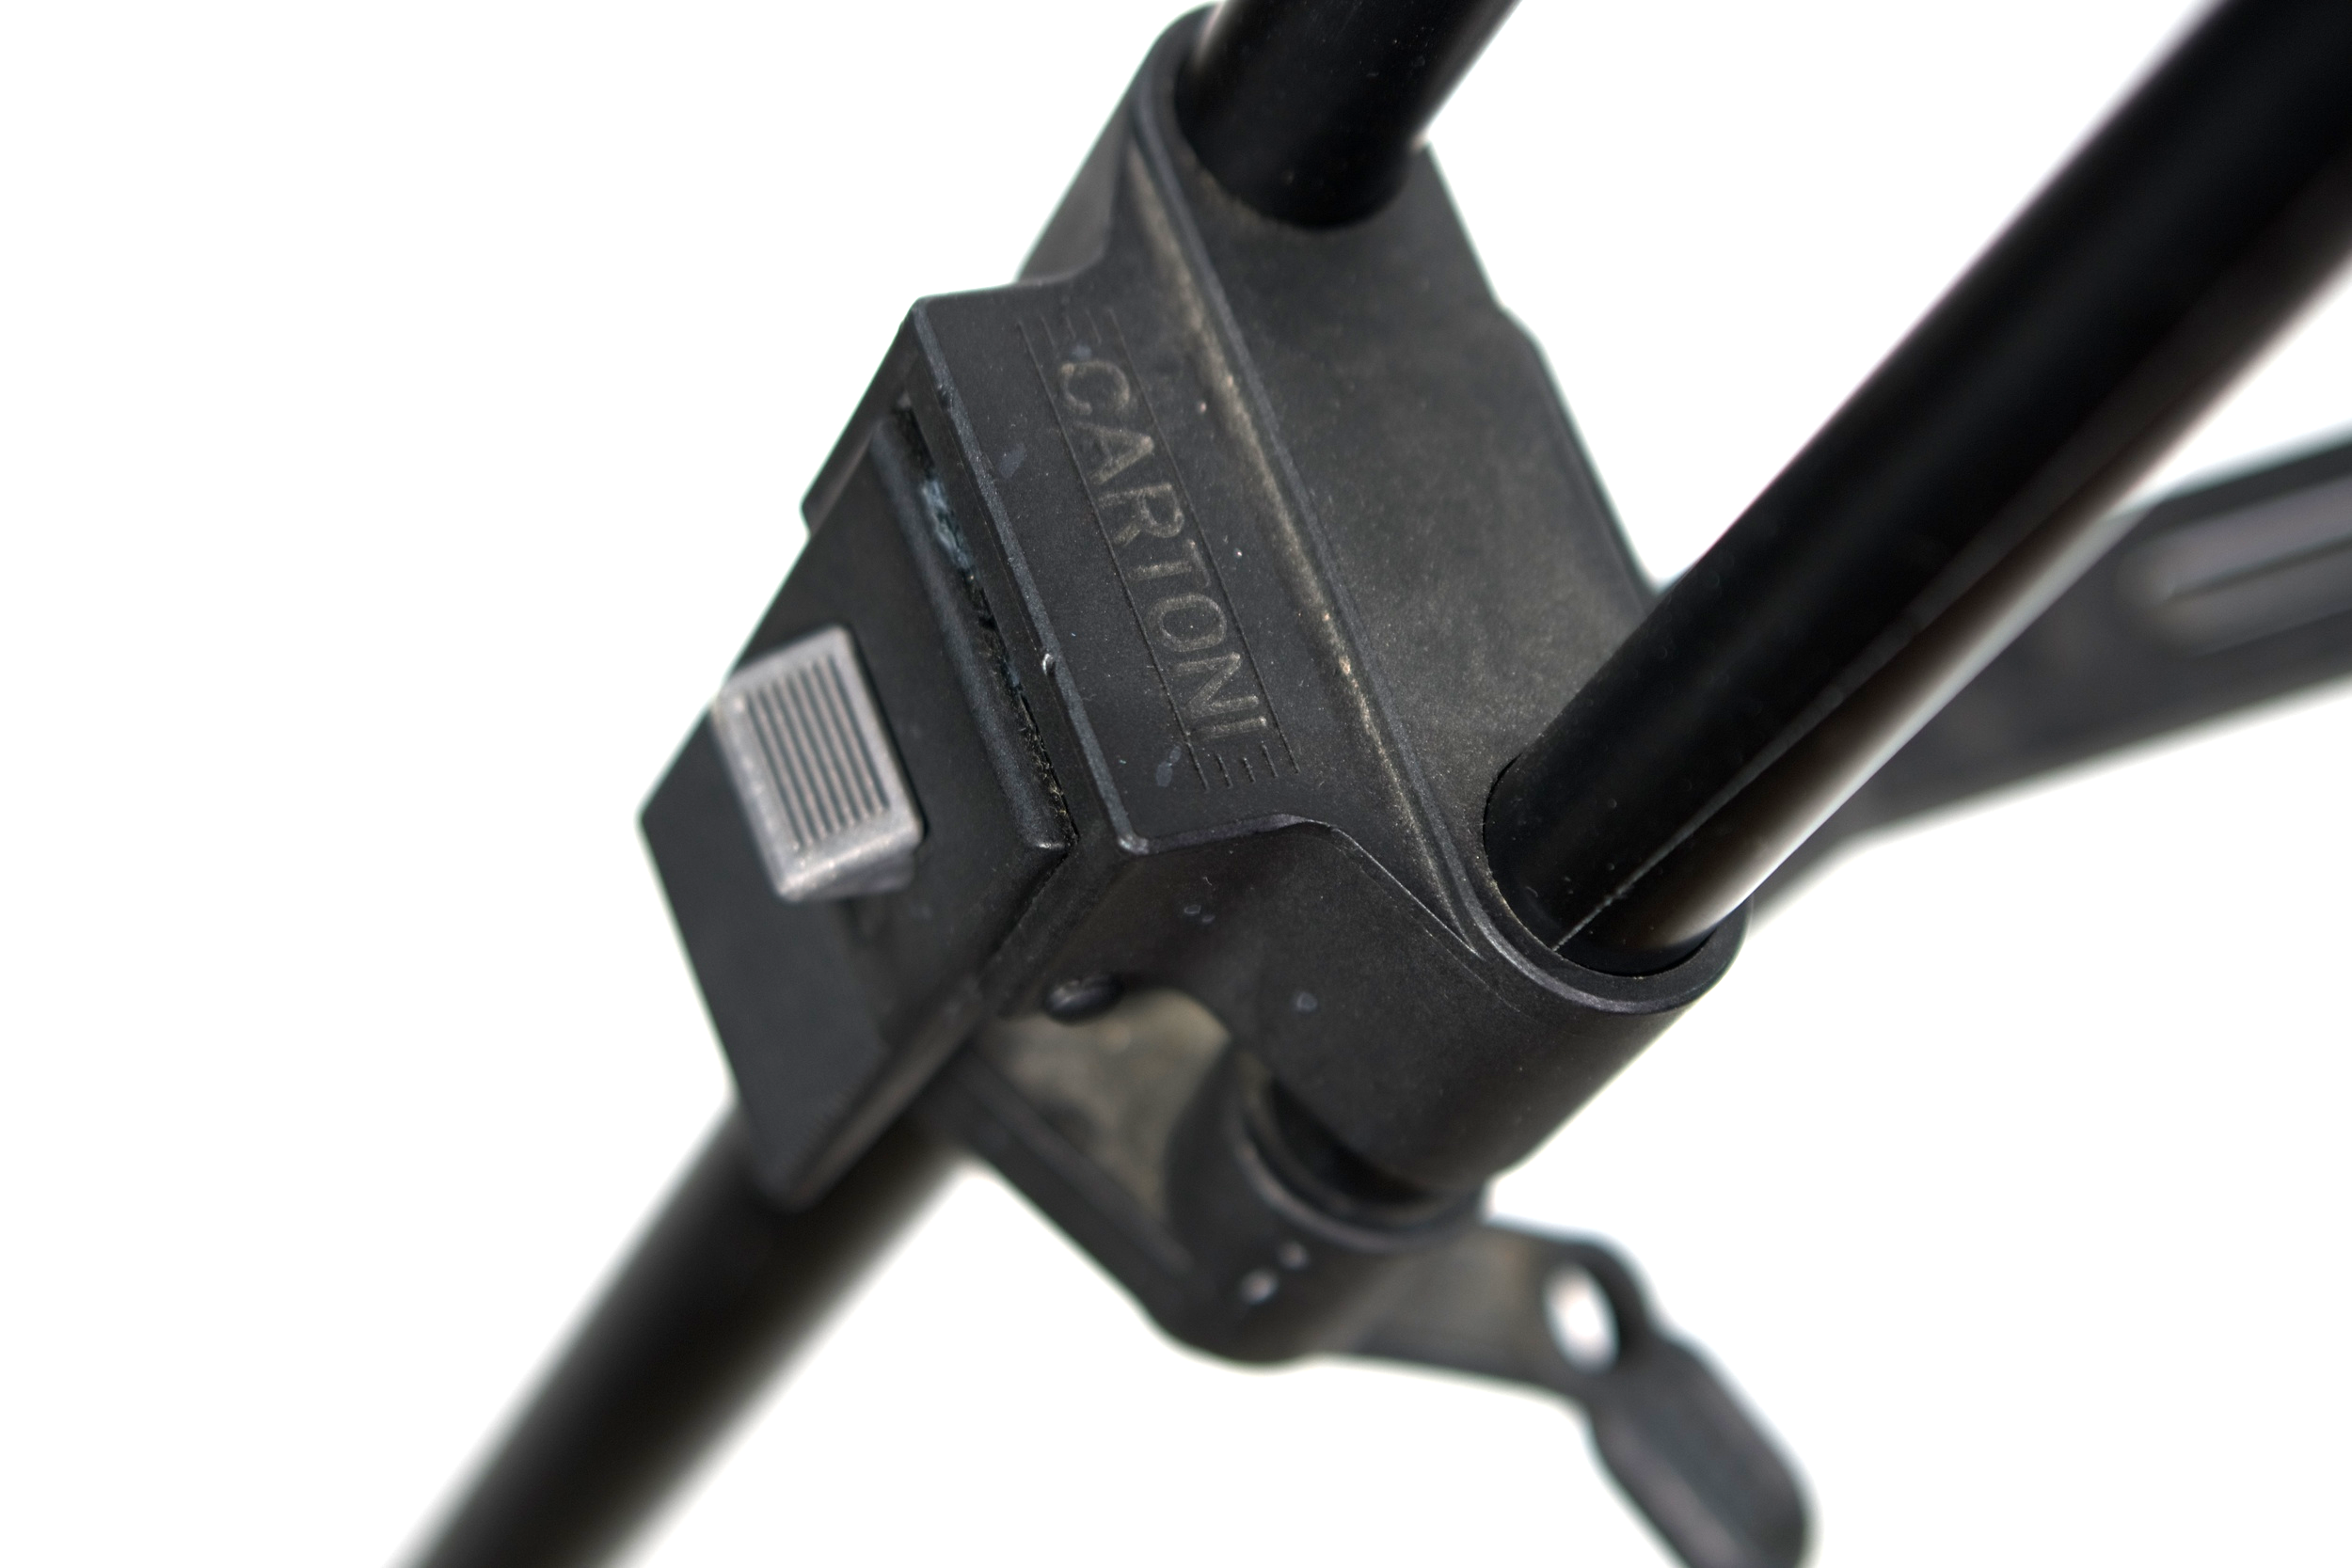 The Cartoni's leg locking mechanism is a bit different, but I've grown to like it. The lever hinges up/down rather than left/right as in every other lever locking tripod I've ever seen.